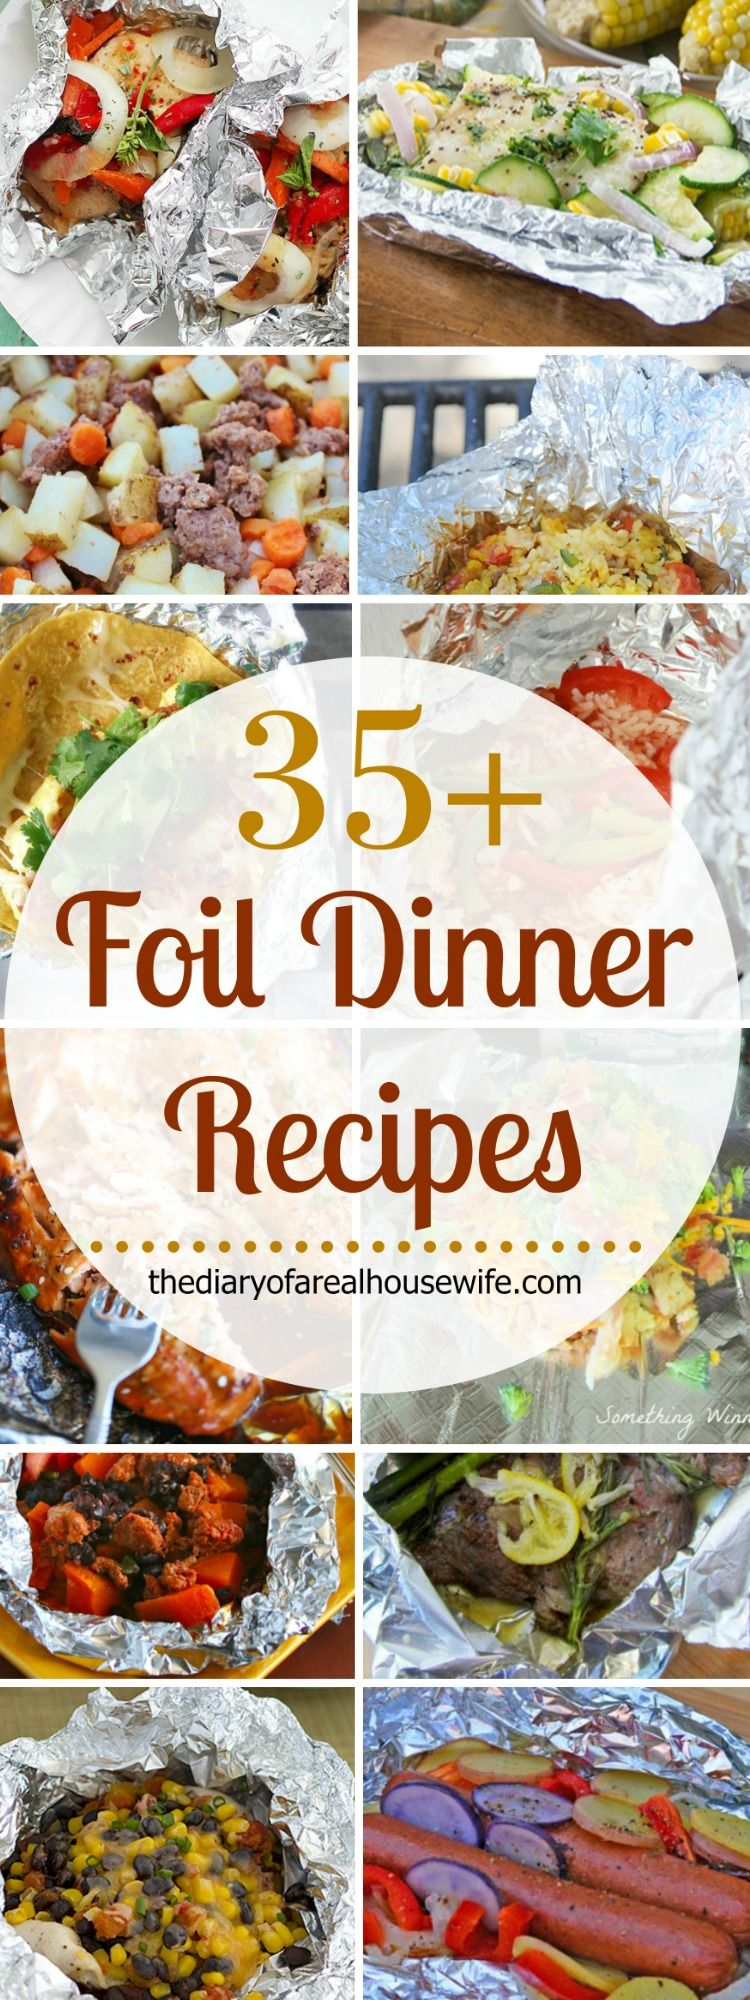 Awesome foil dinner recipe ideas food and drink pinterest awesome foil dinner recipe ideas forumfinder Image collections